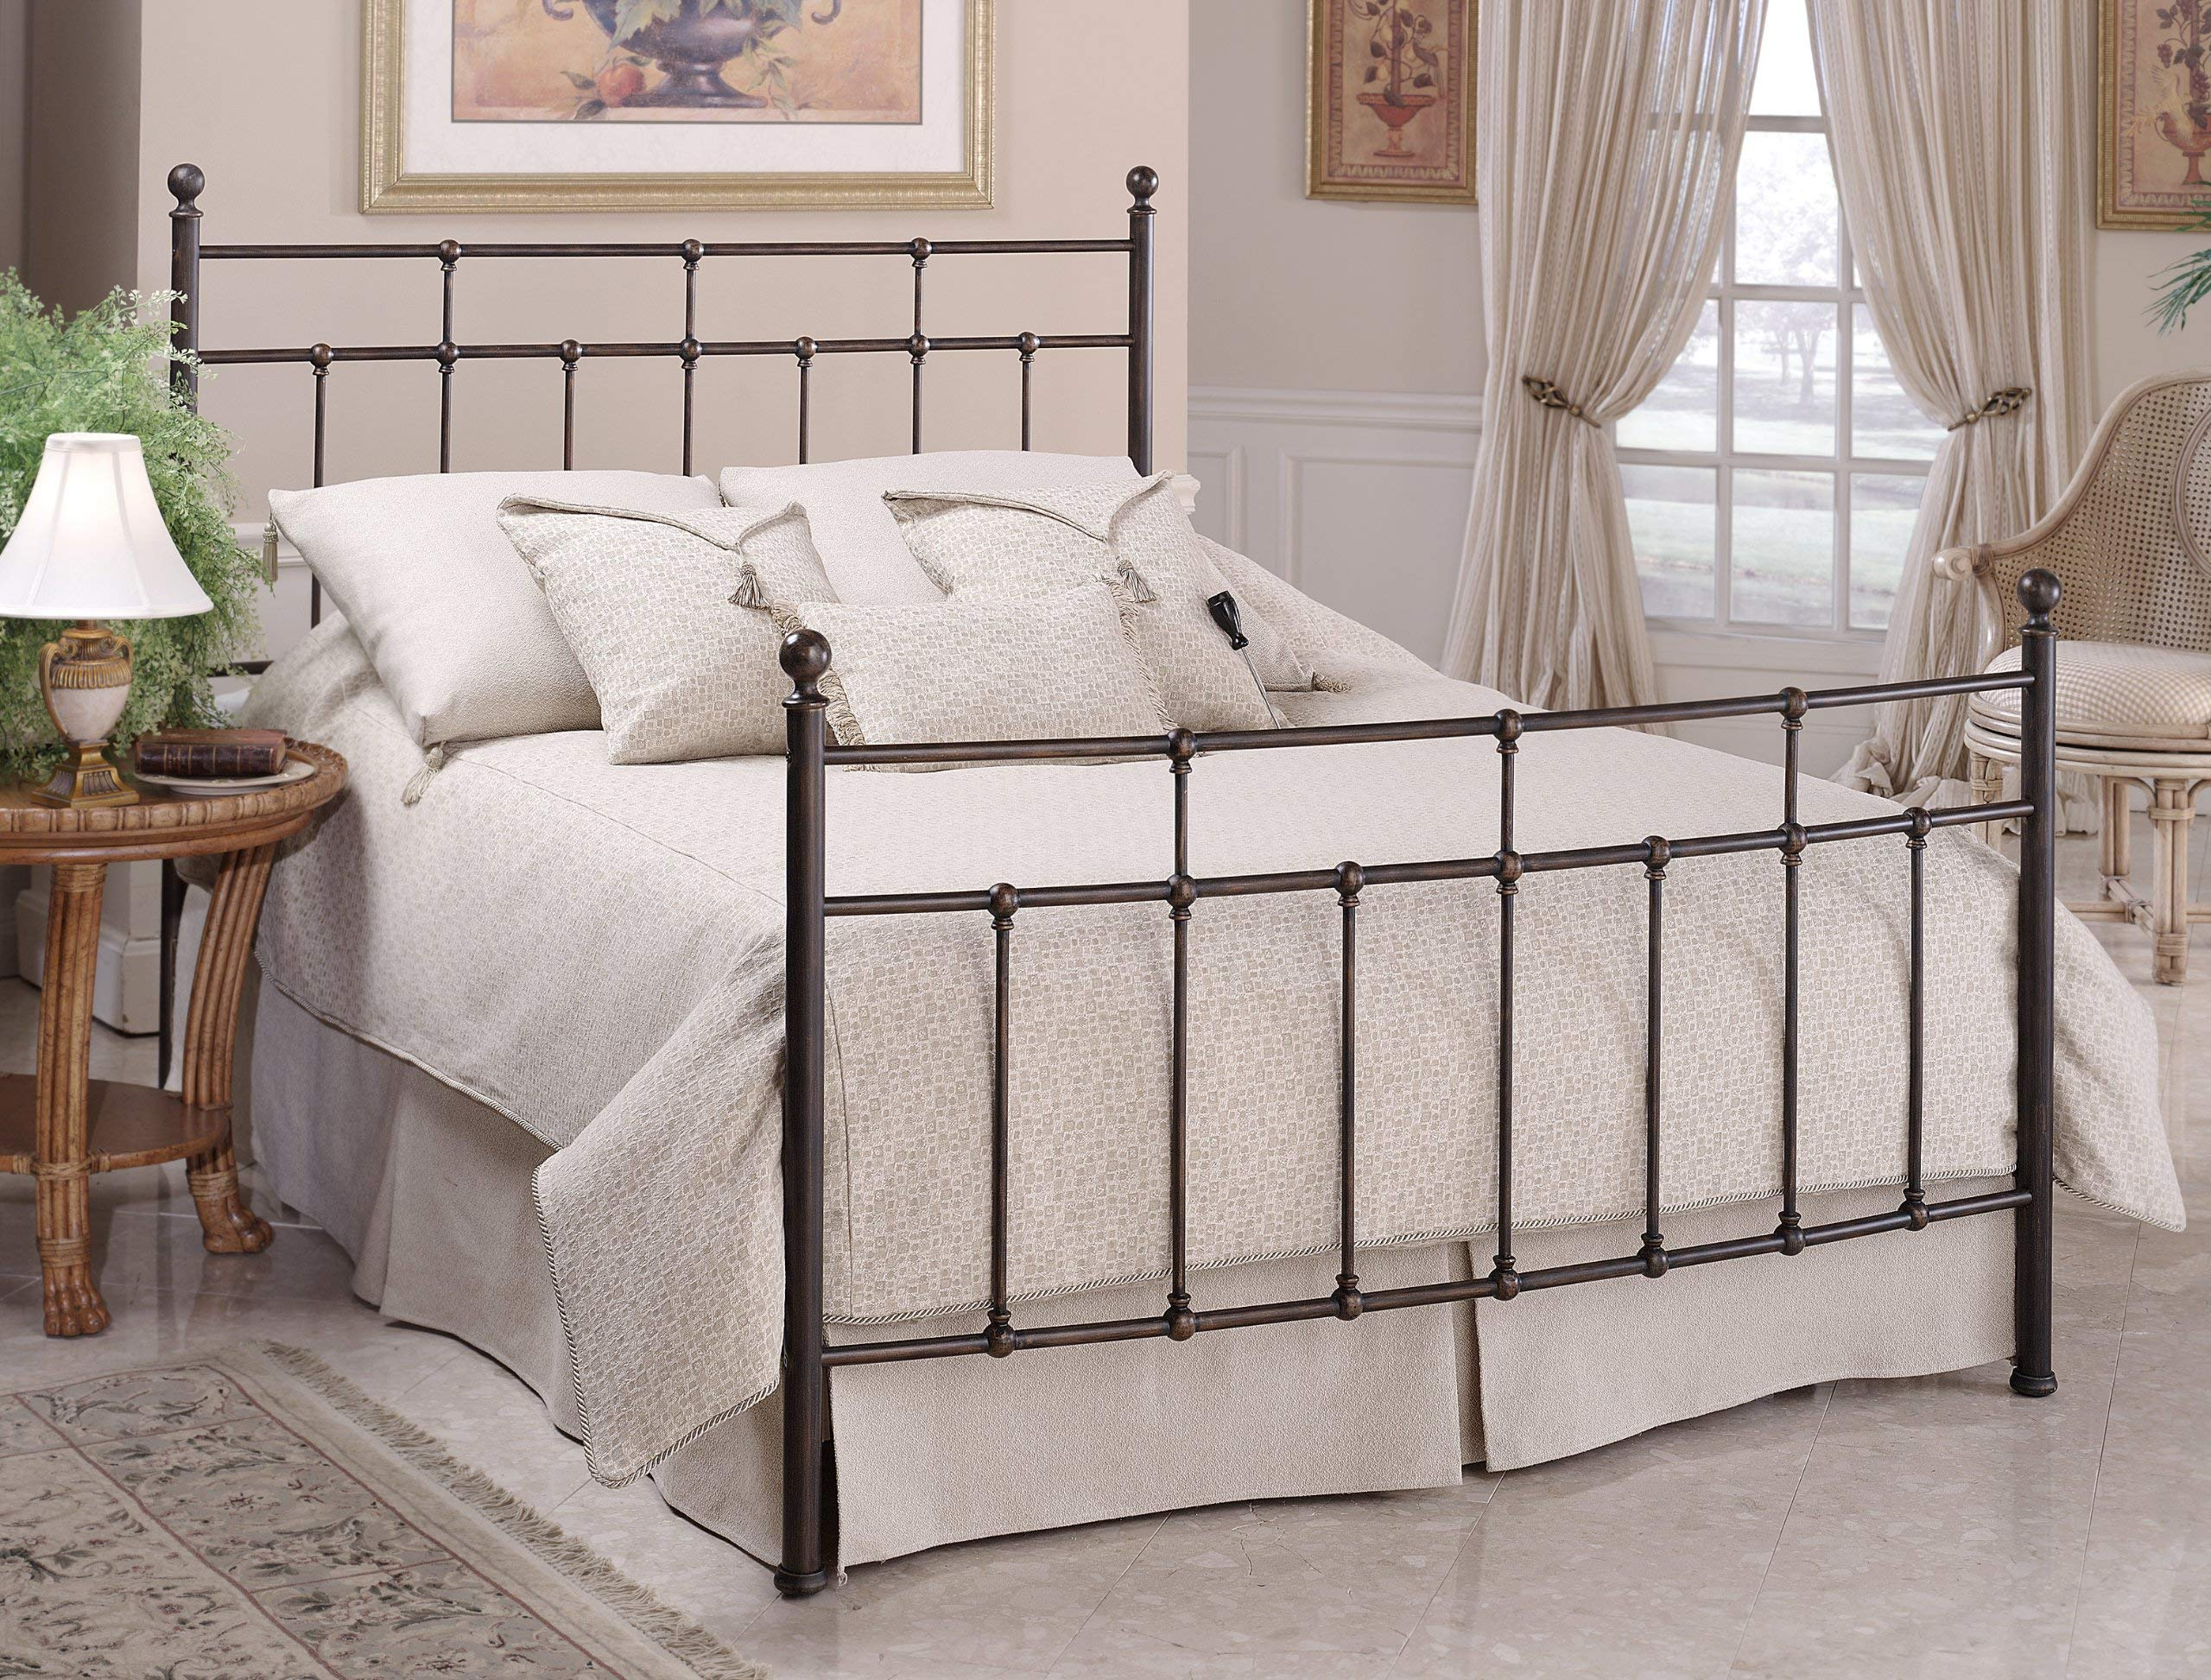 Hillsdale Furniture 380BKR Providence Bed Set with with Rails, King, Antique Bronze